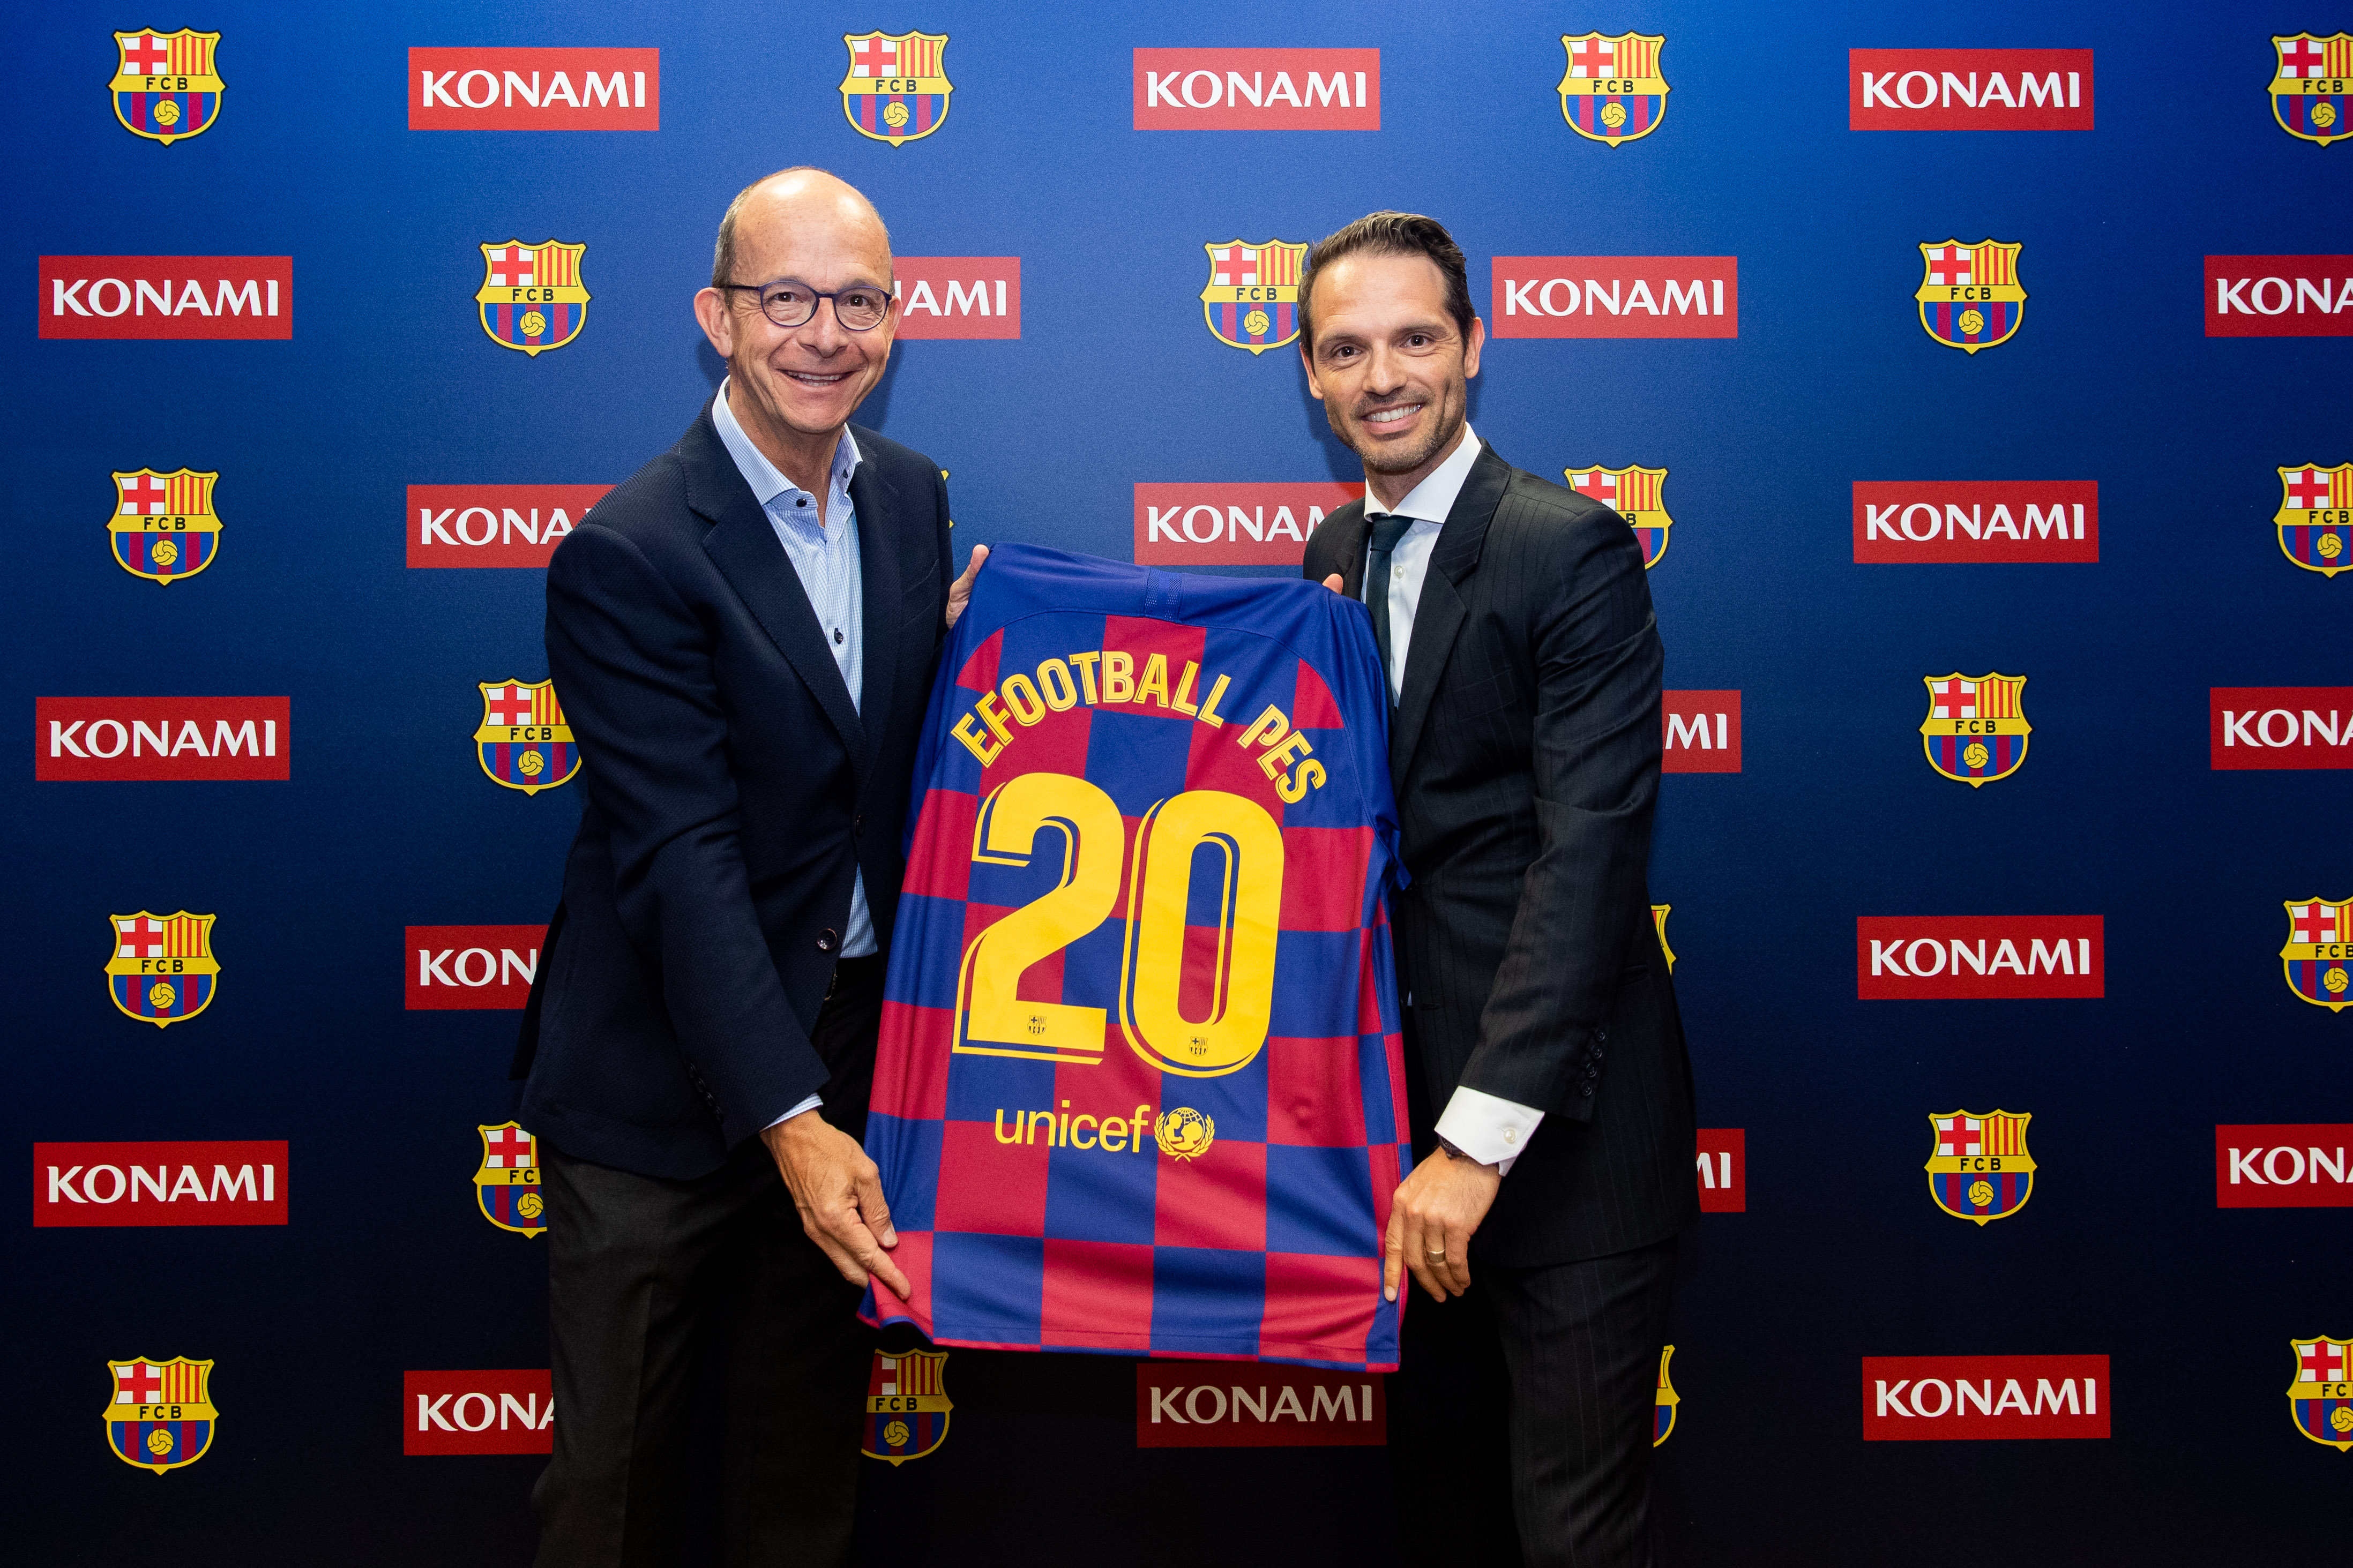 Fc Barcelona And Konami Celebrate Renewal Of Agreement With Event